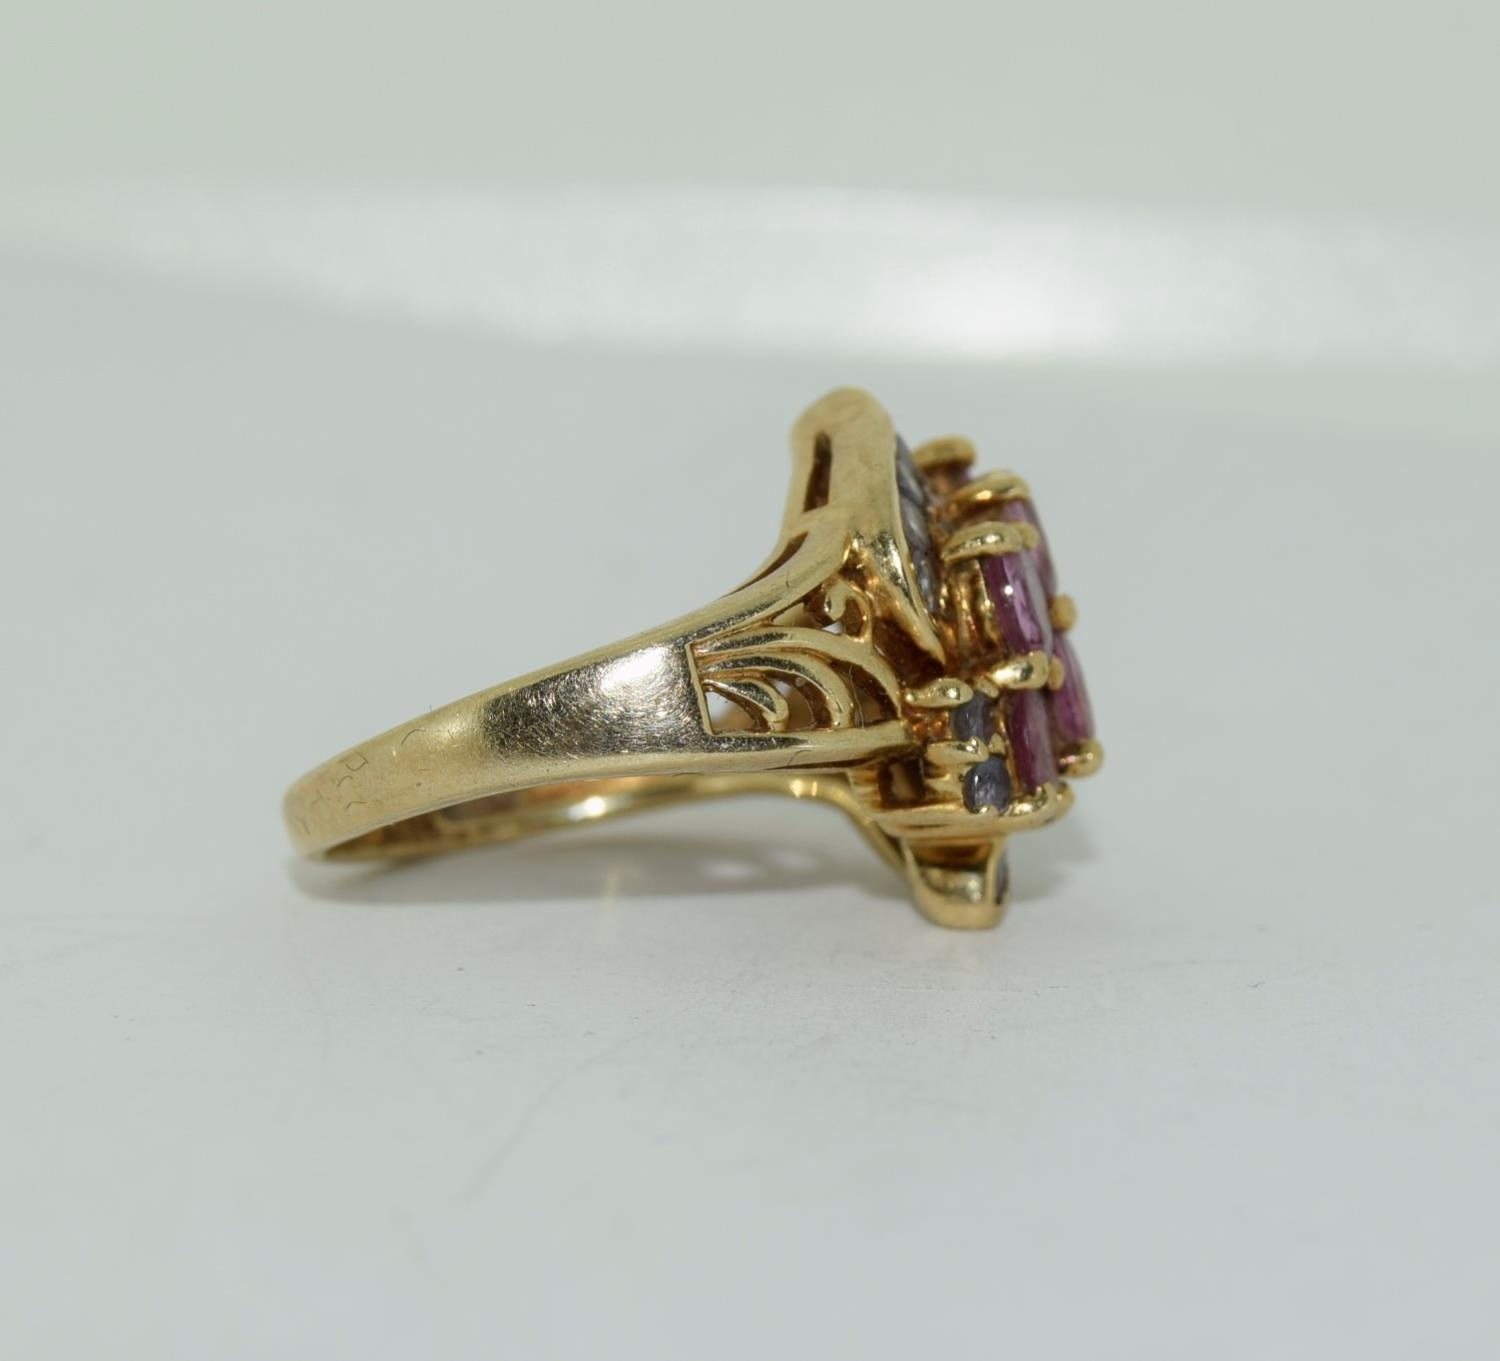 9ct gold ladies pink tourmaline and sapphire twist ring size L 4.9gm - Image 3 of 10